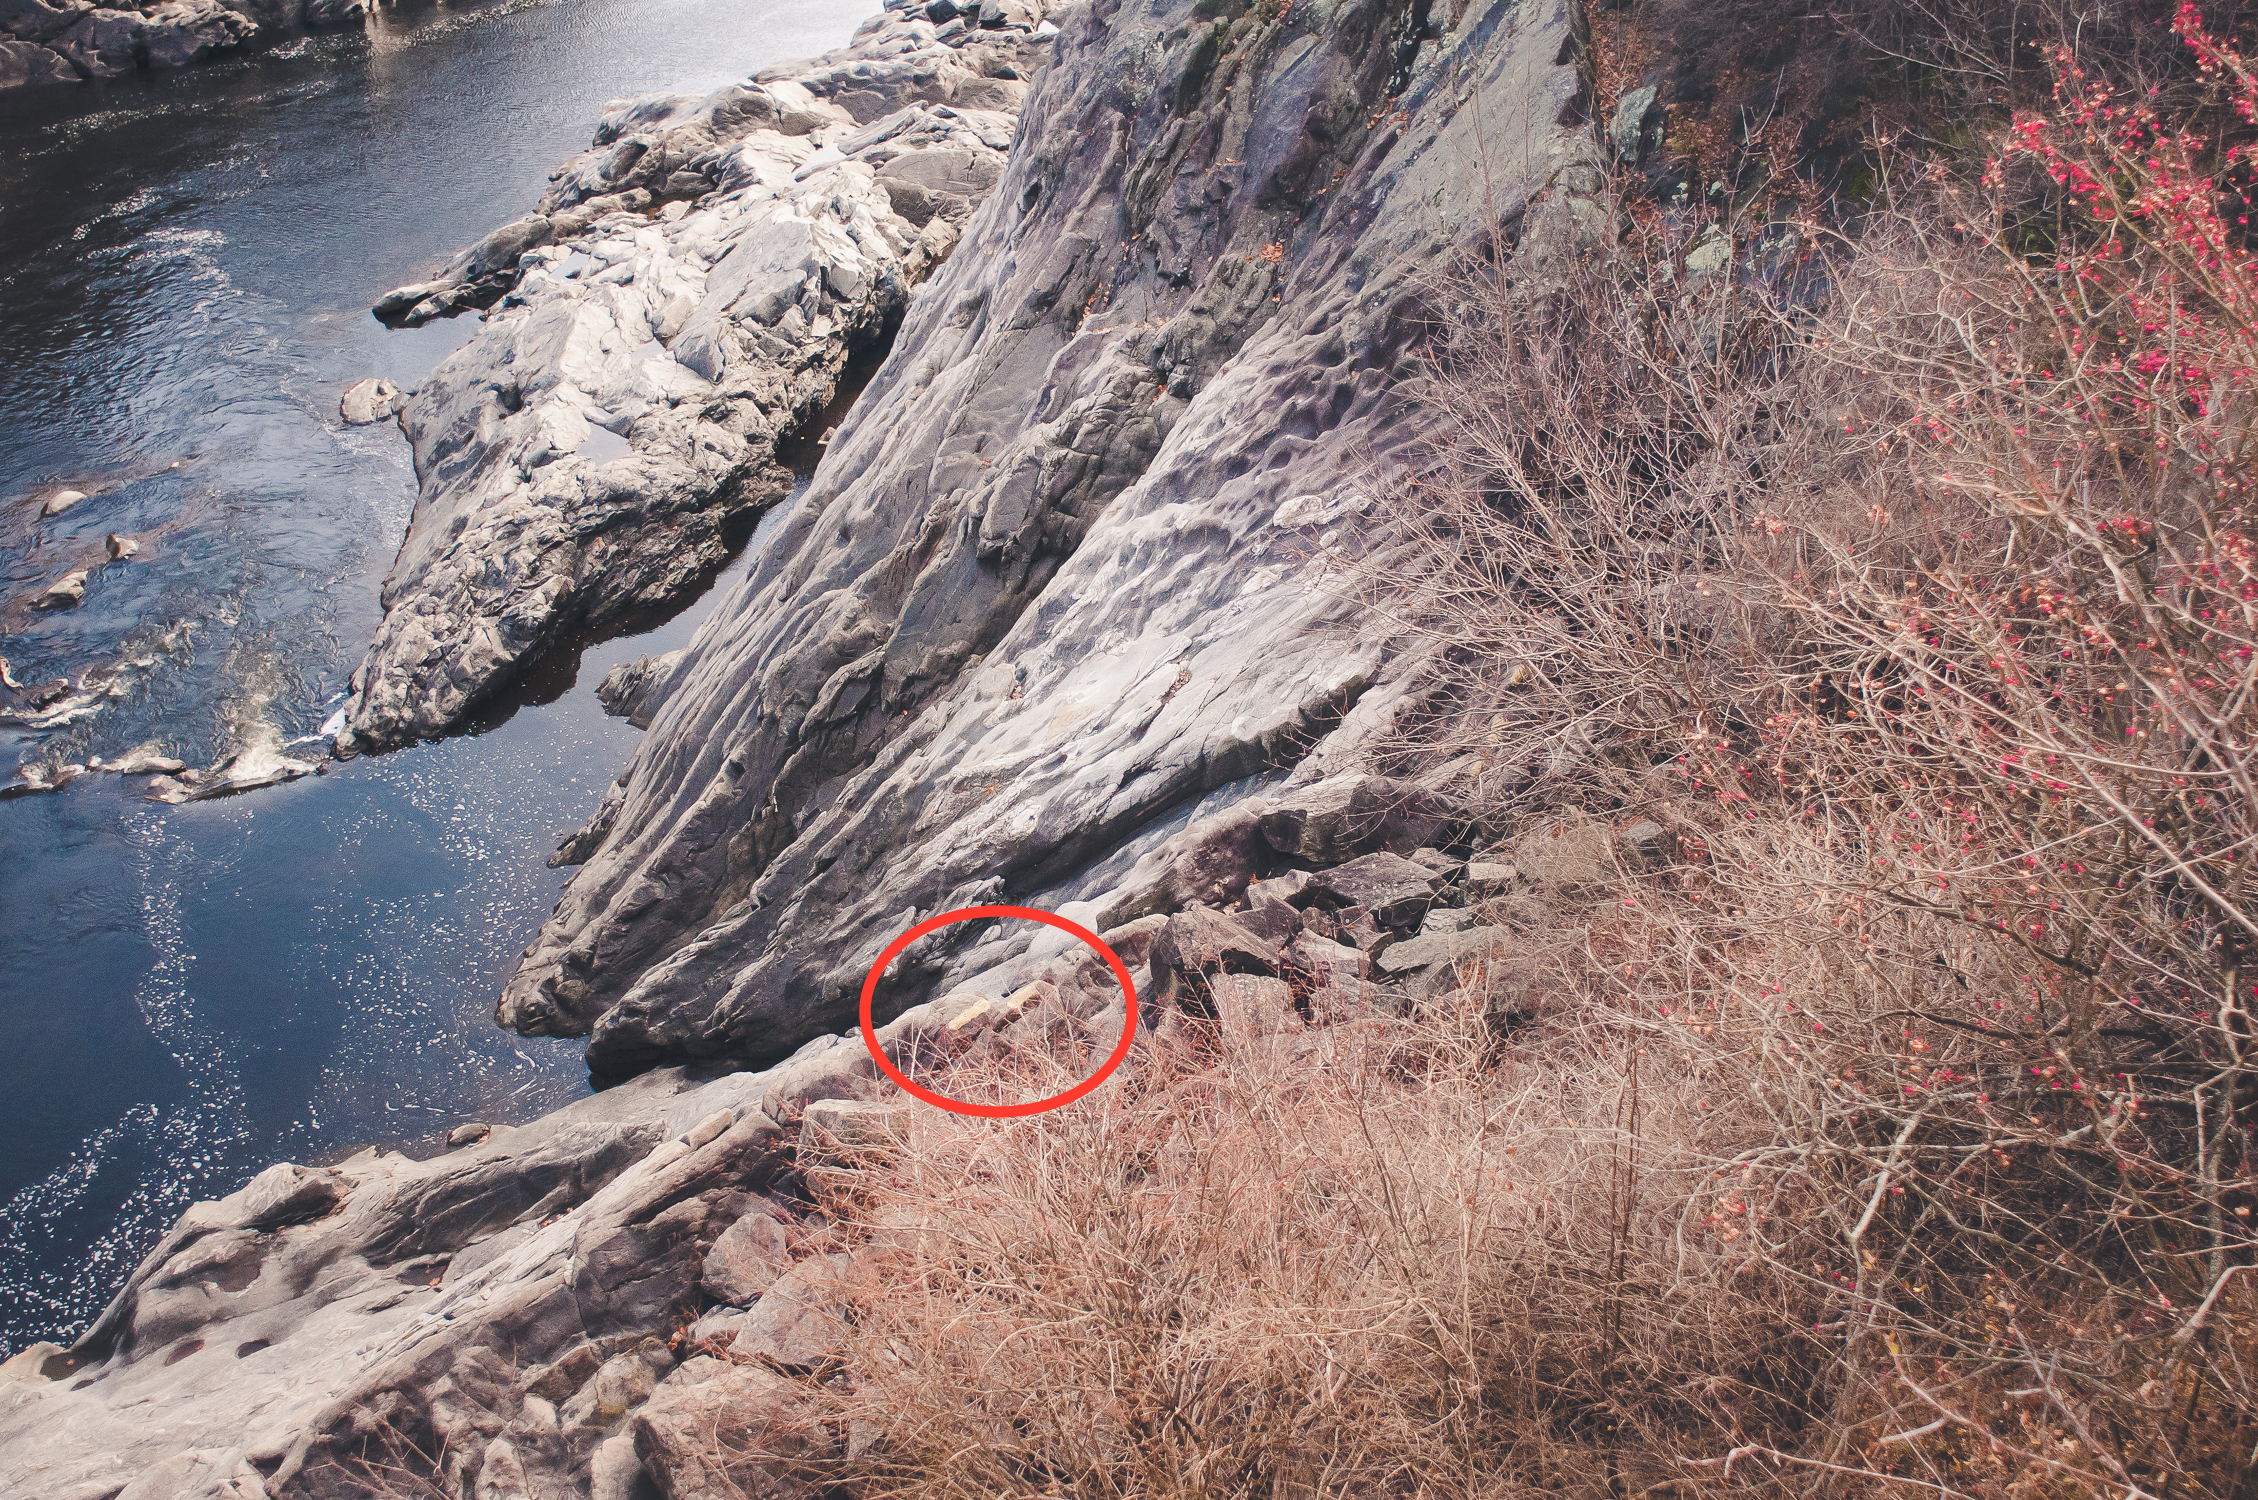 Circled here are the two yellow lines visible from the road above indicating where the petroglyphs are located.